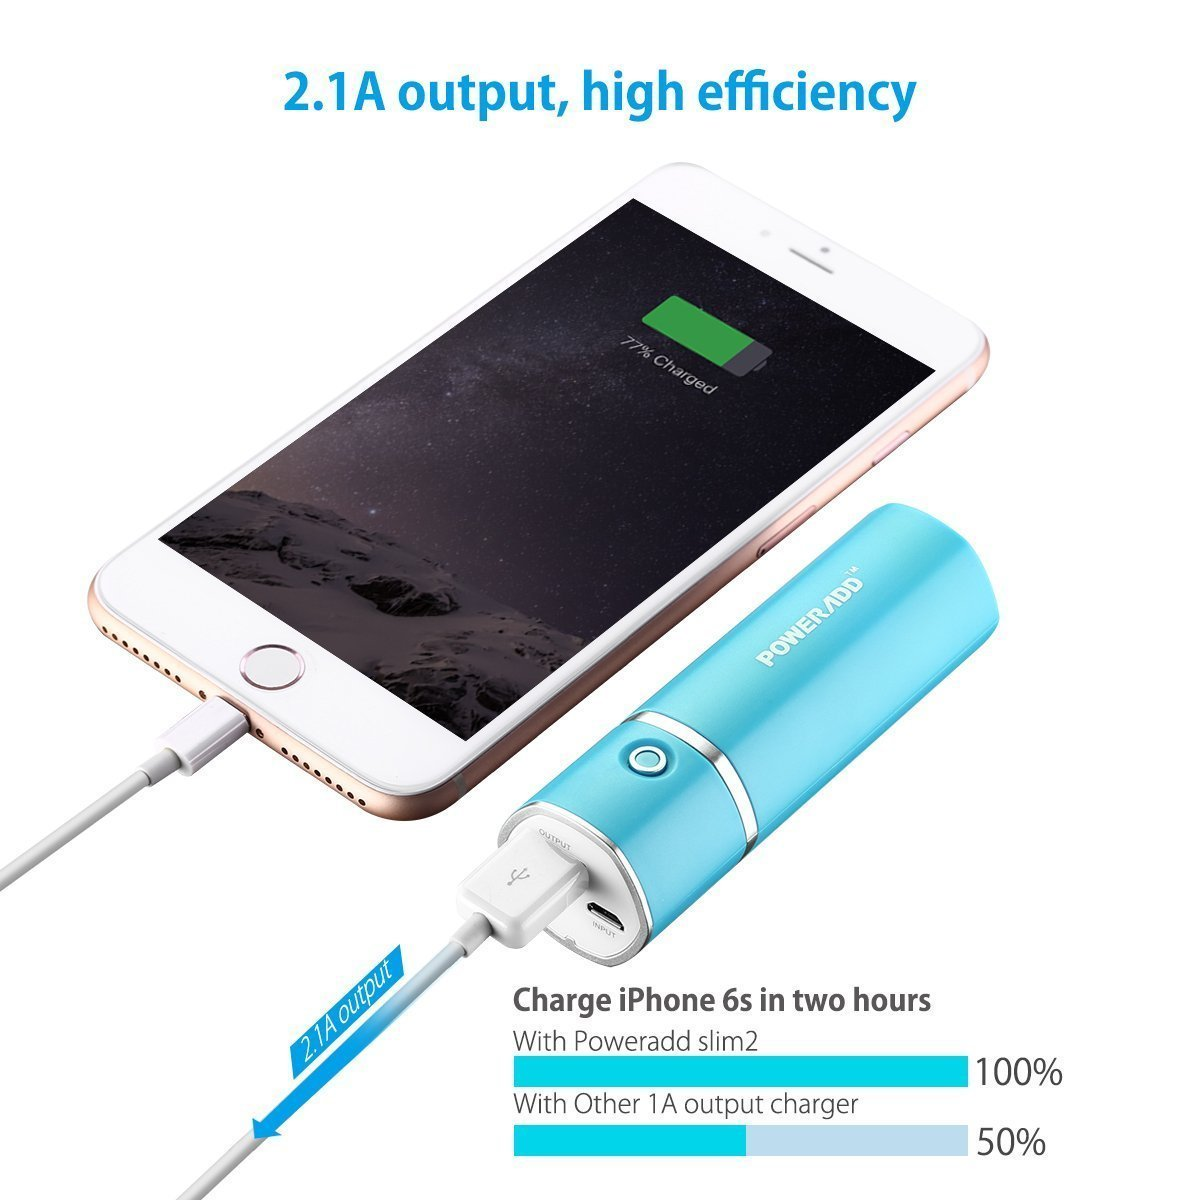 [Upgraded] Poweradd Slim 2 Most Compact 5000mAh External Battery 2.1A Ouput Portable Charger with Smart Charge for iPhones, iPad, Samsung Galaxy, HTC and More - Blue by POWERADD (Image #4)